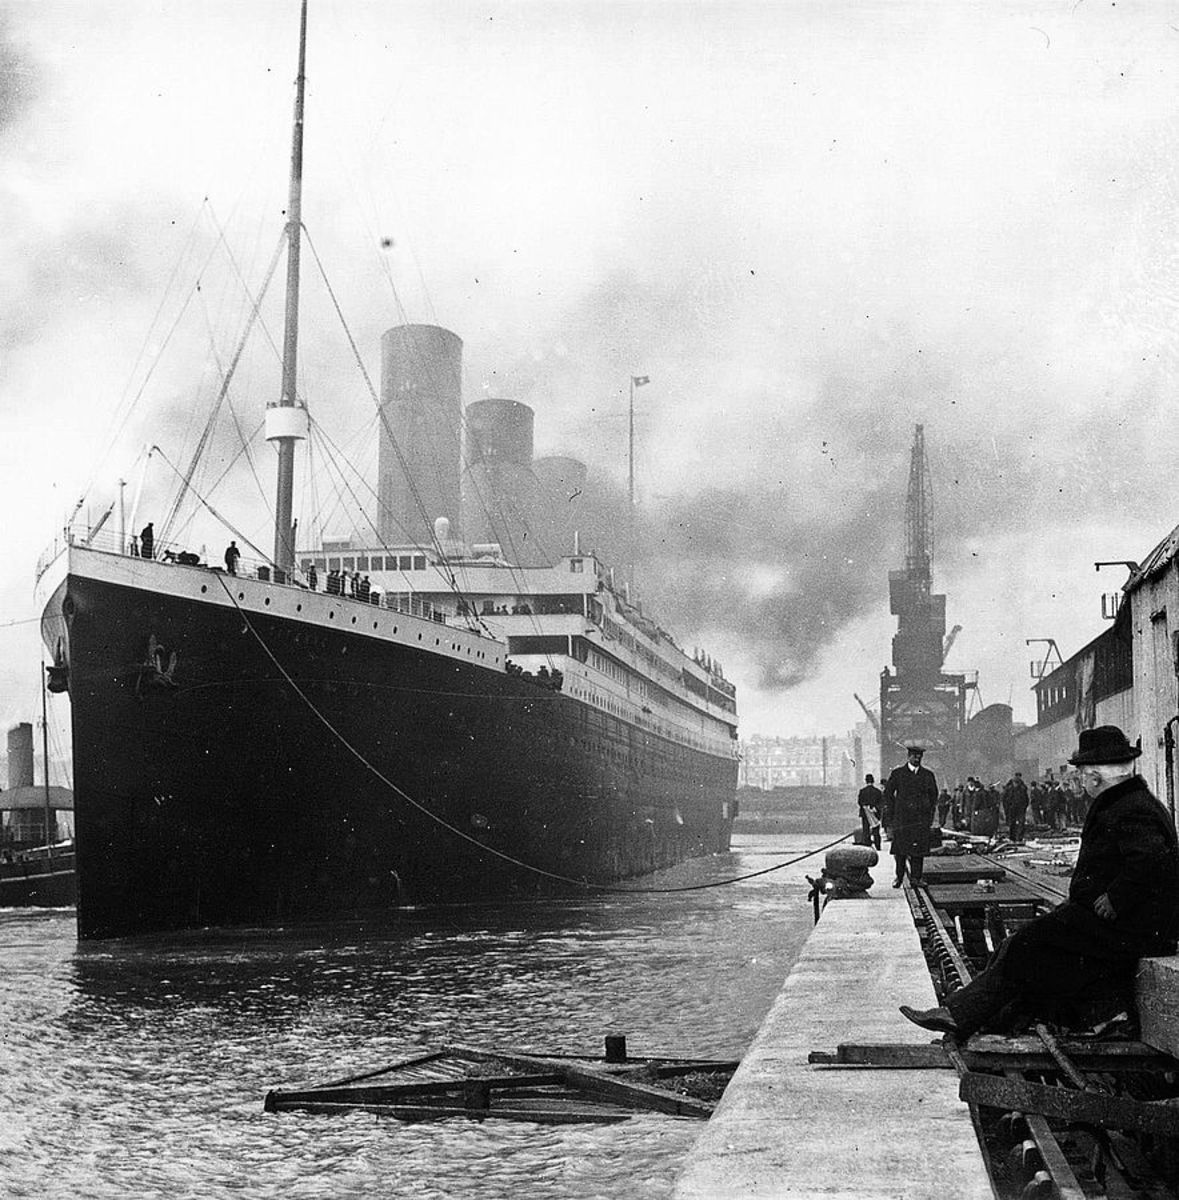 Titanic leaves Southampton, England on her first and last voyage.